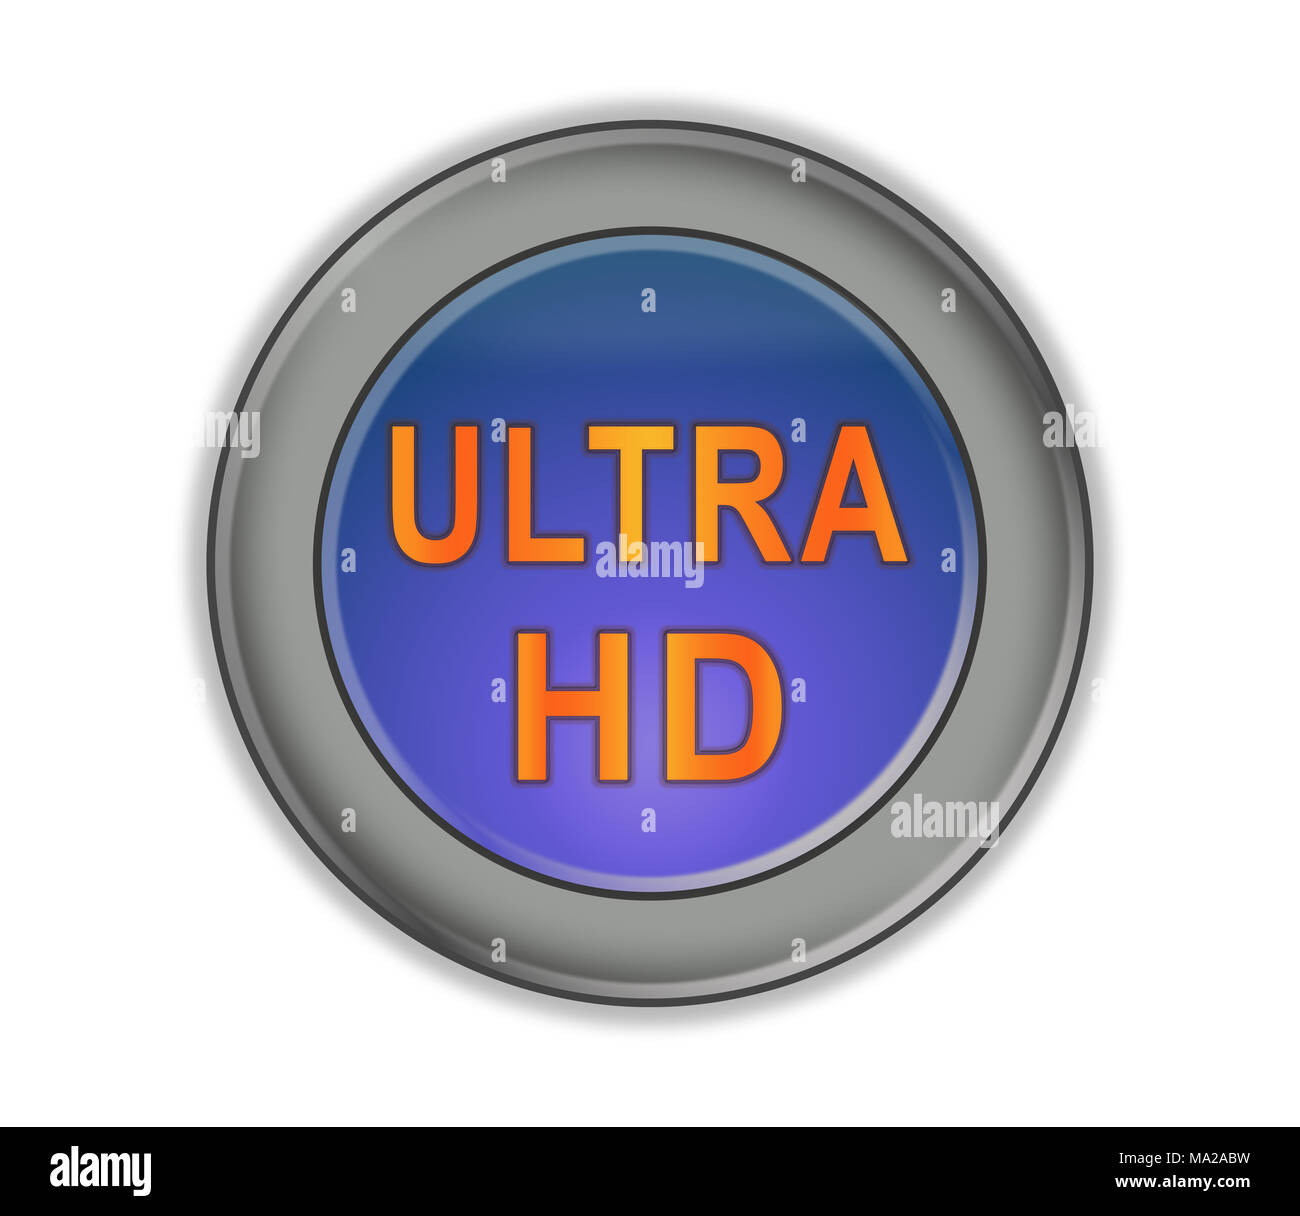 Round three-dimensional button with blue center and orange inscription 'ULTRA HD', white background - Stock Image